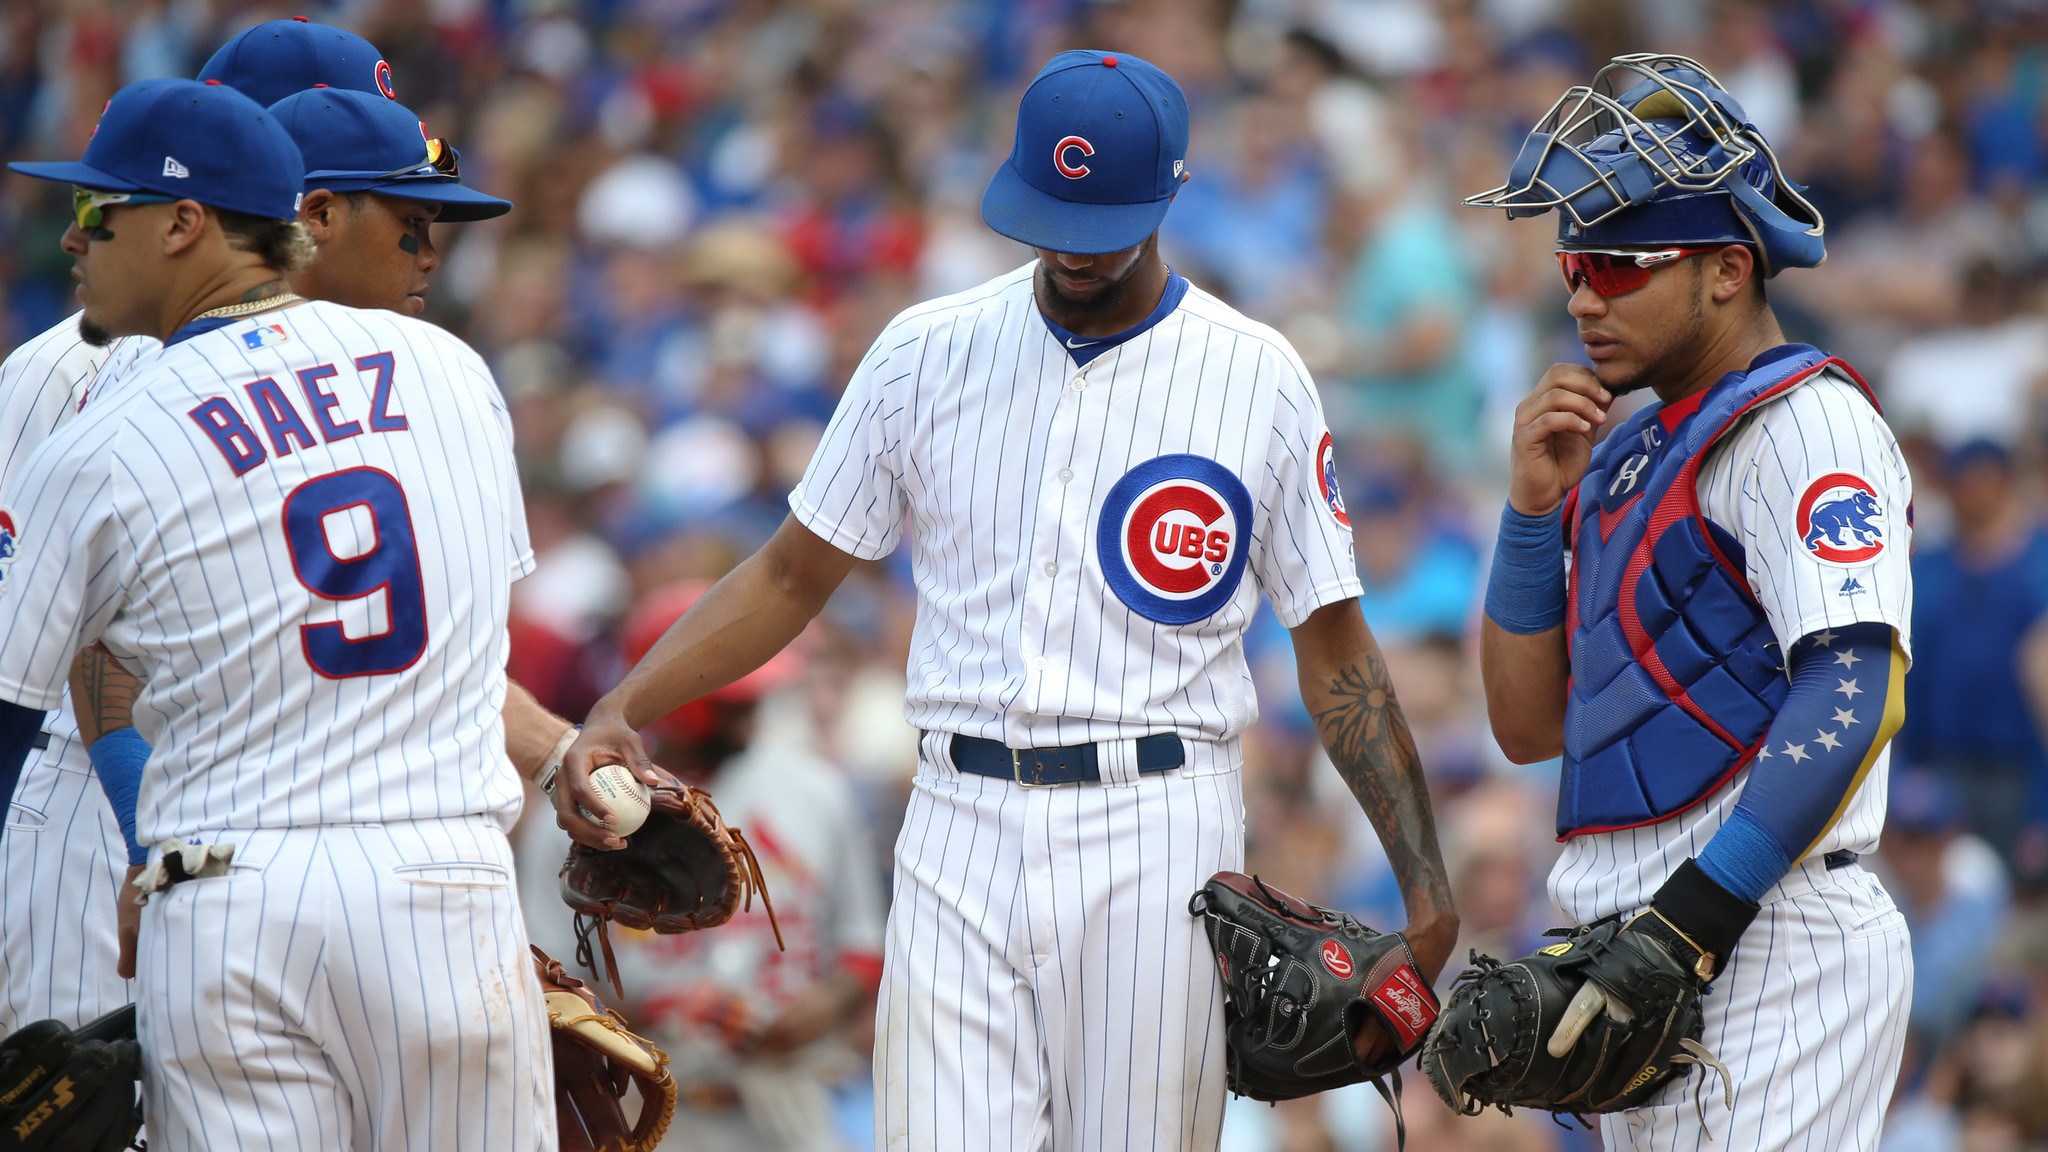 Ct-cubs-vs-cardinals-photos-20170721